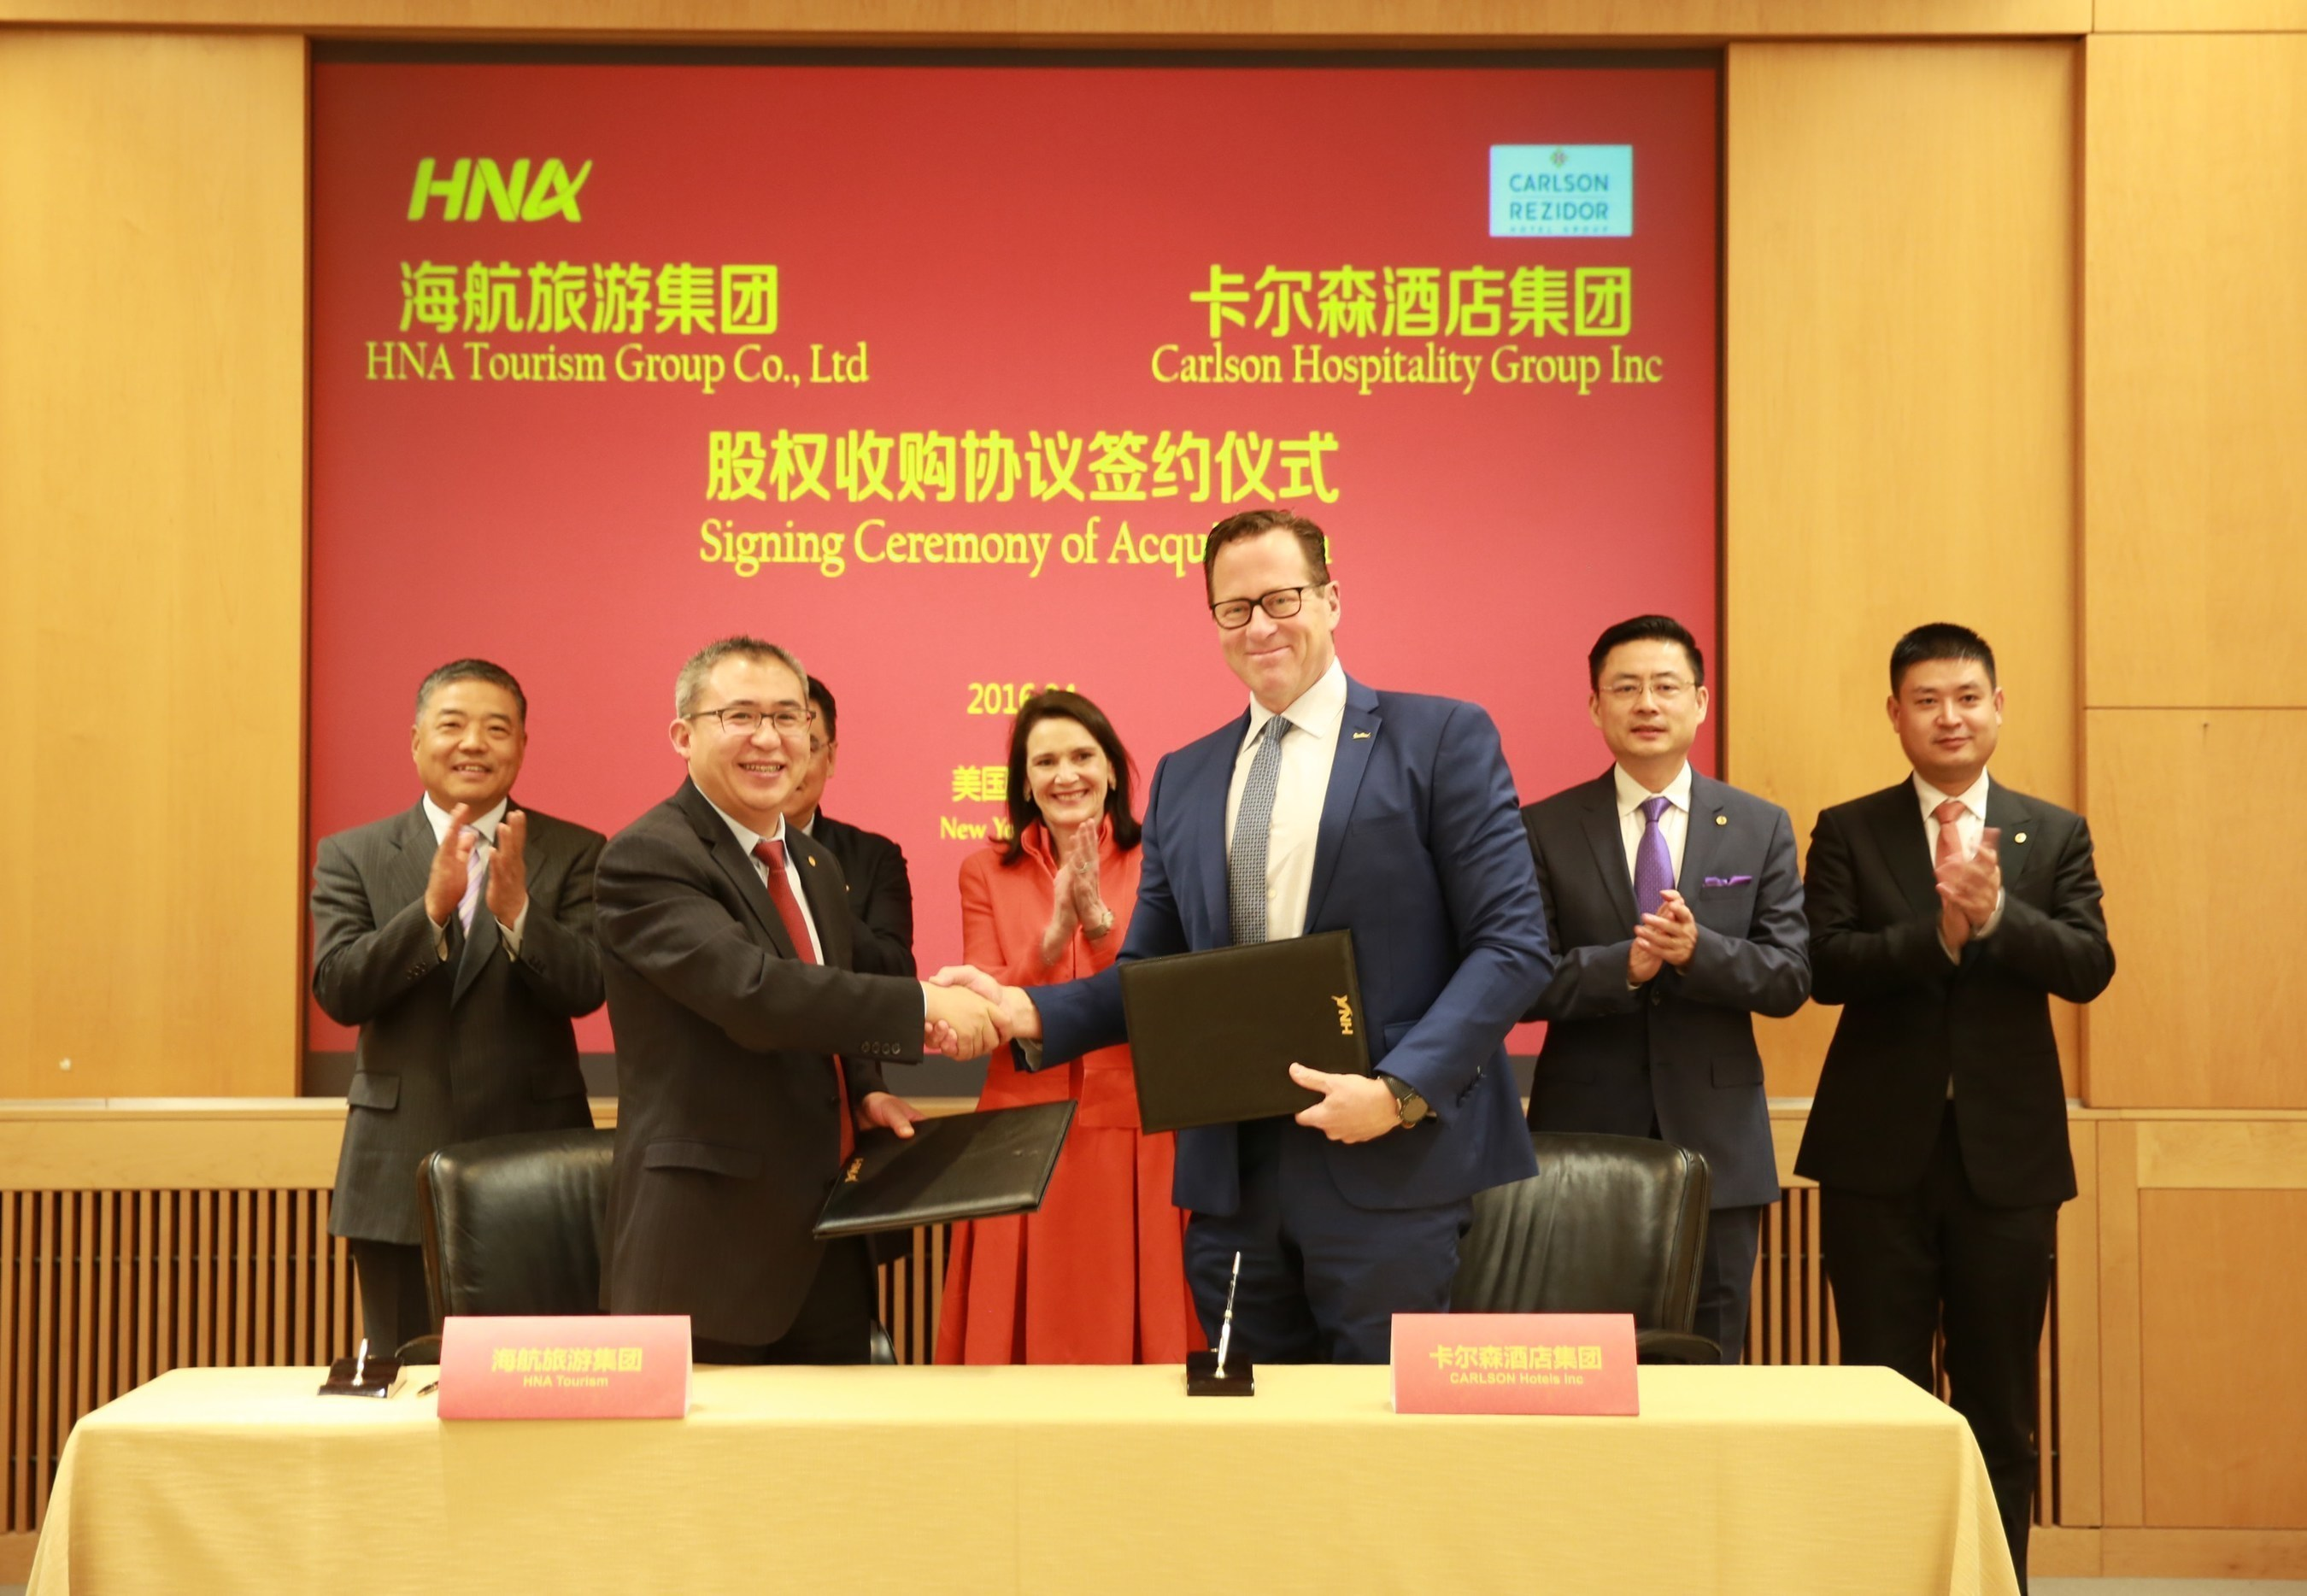 Handshake from Left to Right: BAI Haibo, Chairman and CEO, HNA Hospitality Group and David P. Berg, CEO, Carlson Hospitality GroupWitness Leaders from Left to Right: CHEN WENLI, Vice Chairman, HNA Group; WANG JIAN, Chairman, HNA GROUP*; Diana Nelson, Chair, Carlson; Cheng Feng, Chairman of Board Members*, HNA Group; TAN XIANGDONG, CEO, HNA Group; LI TIE, CEO, HNA Tourism Group*not visible